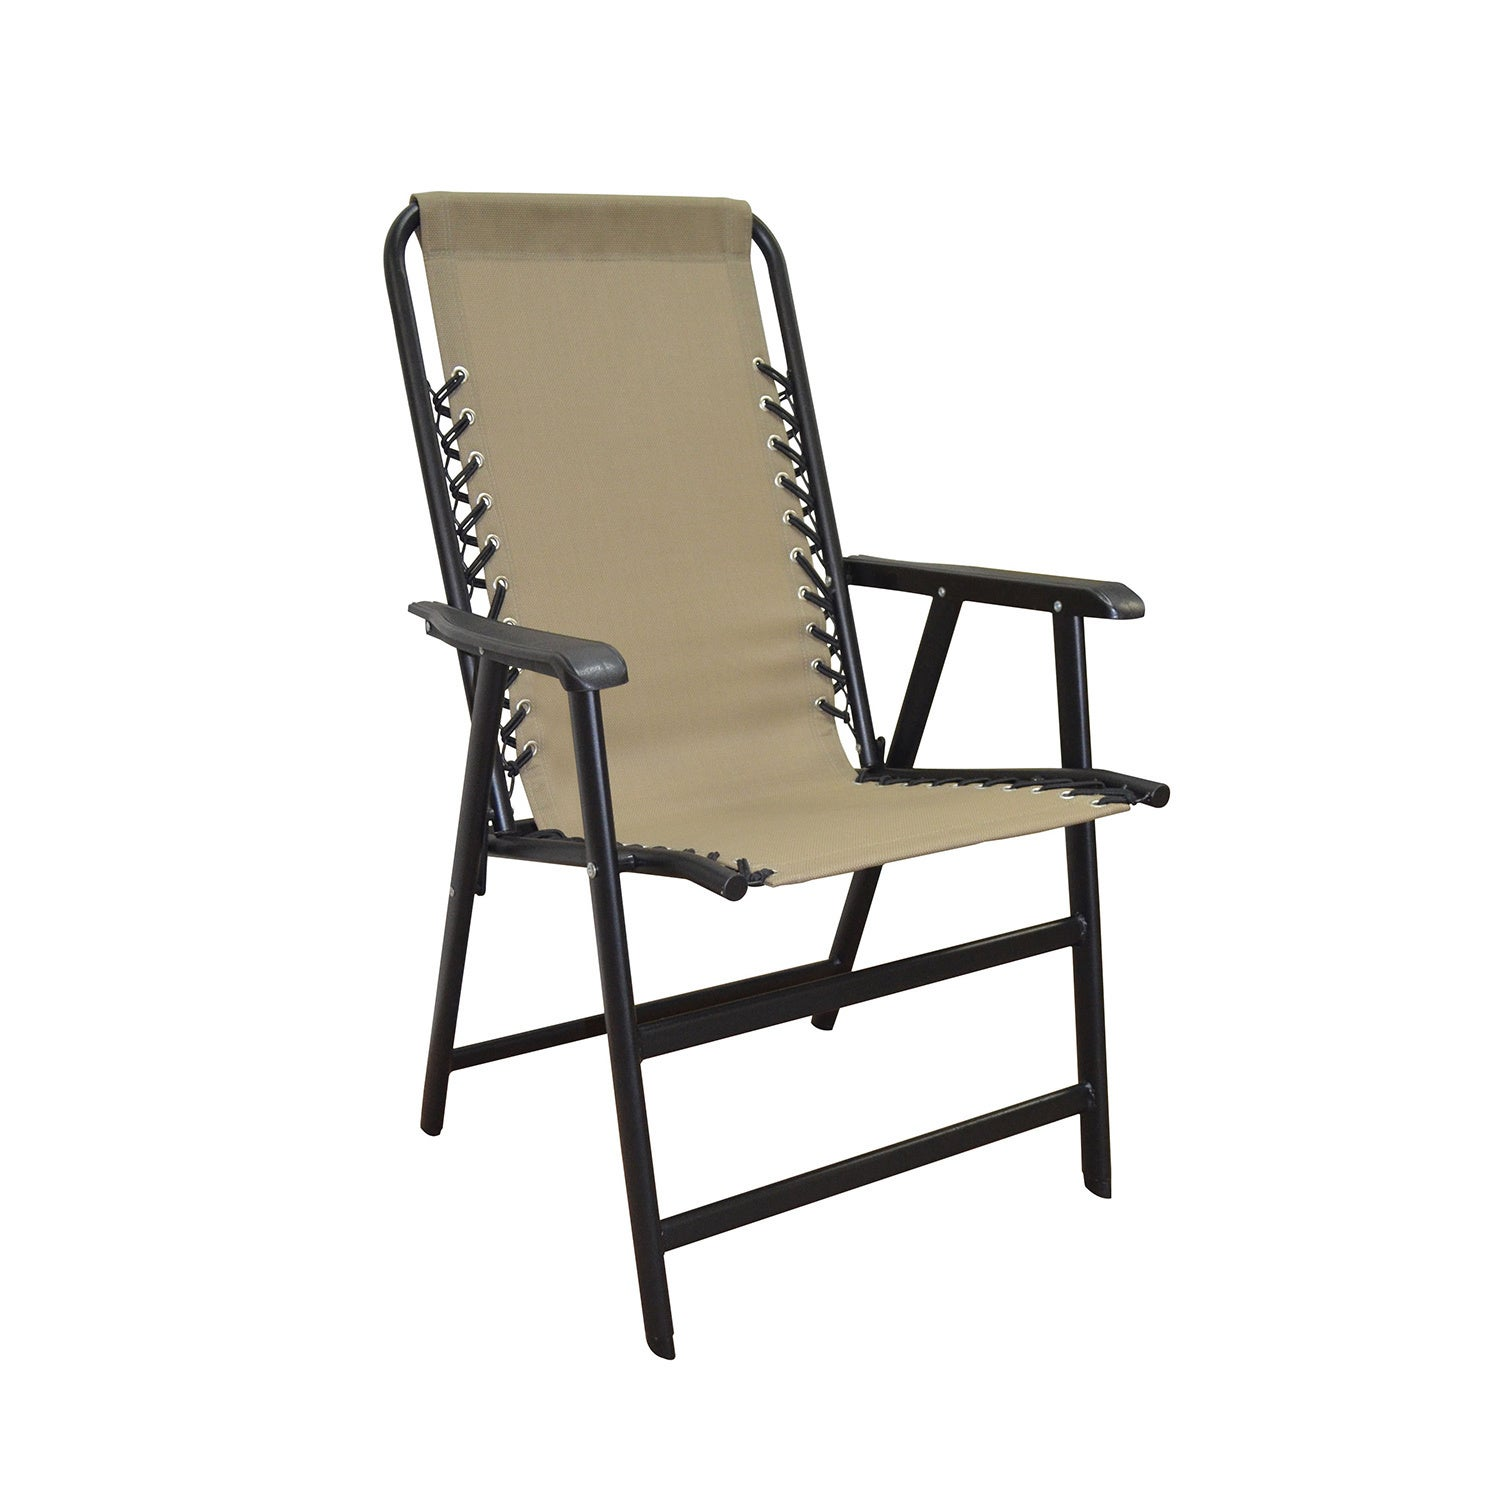 Merveilleux Shop Caravan Sports Beige Suspension Folding Chair   Free Shipping On  Orders Over $45   Overstock.com   8789473